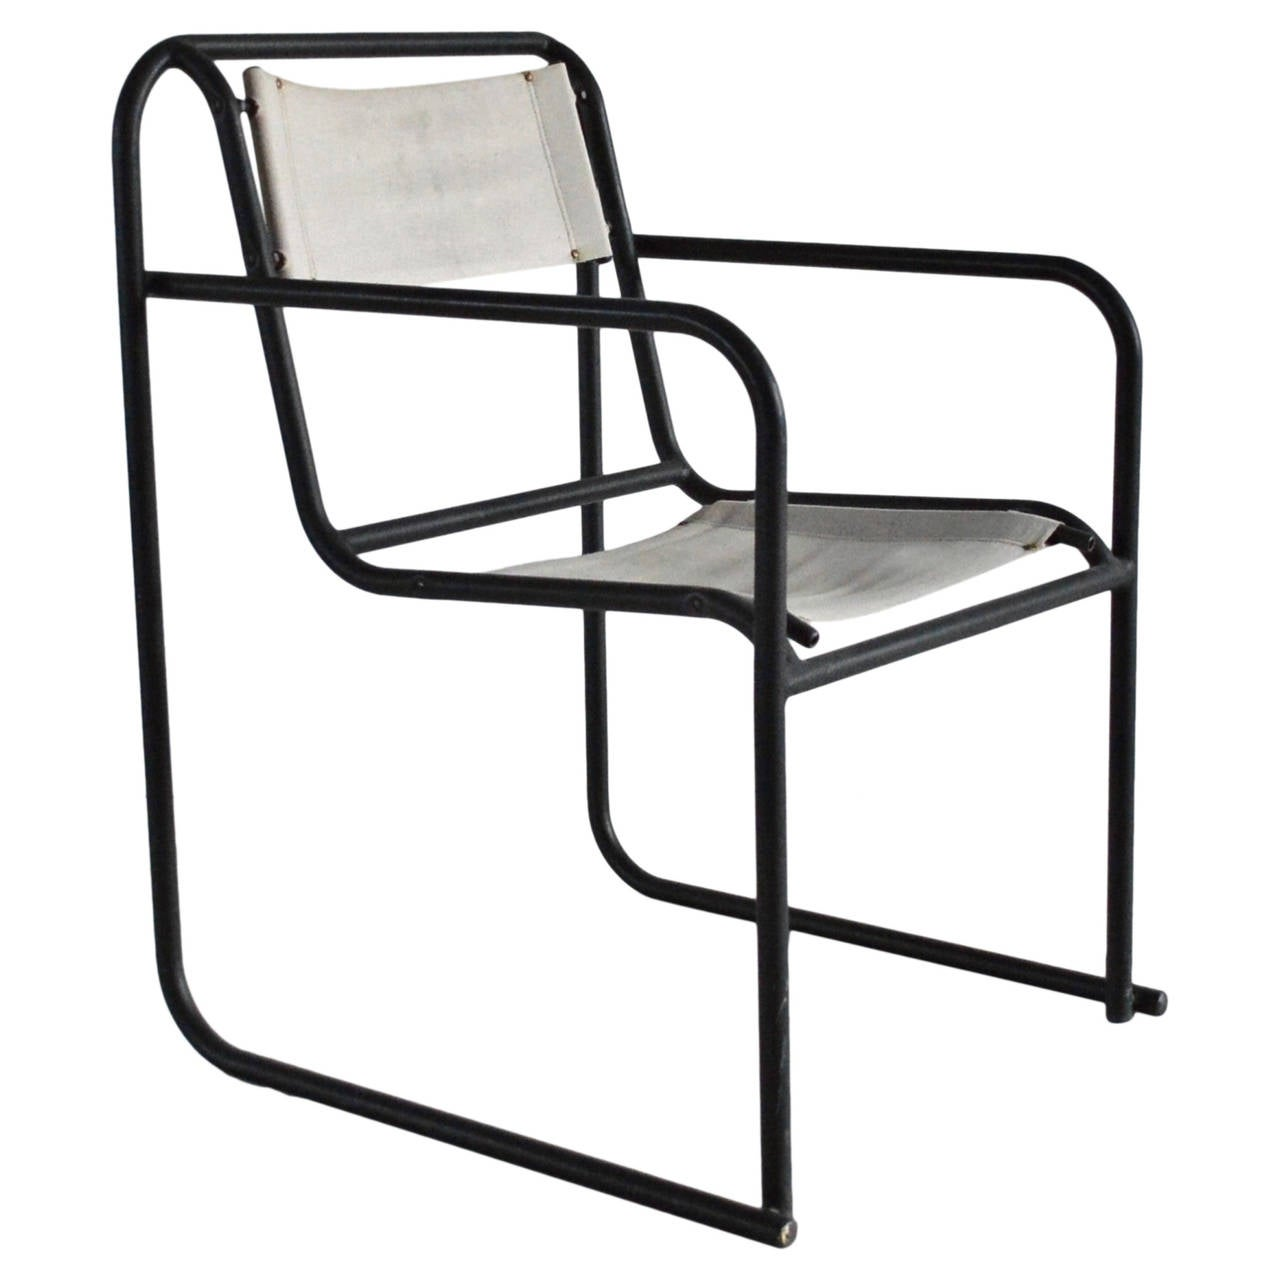 Bruno Pollak Rp 7 Bauhaus Chair At 1stdibs